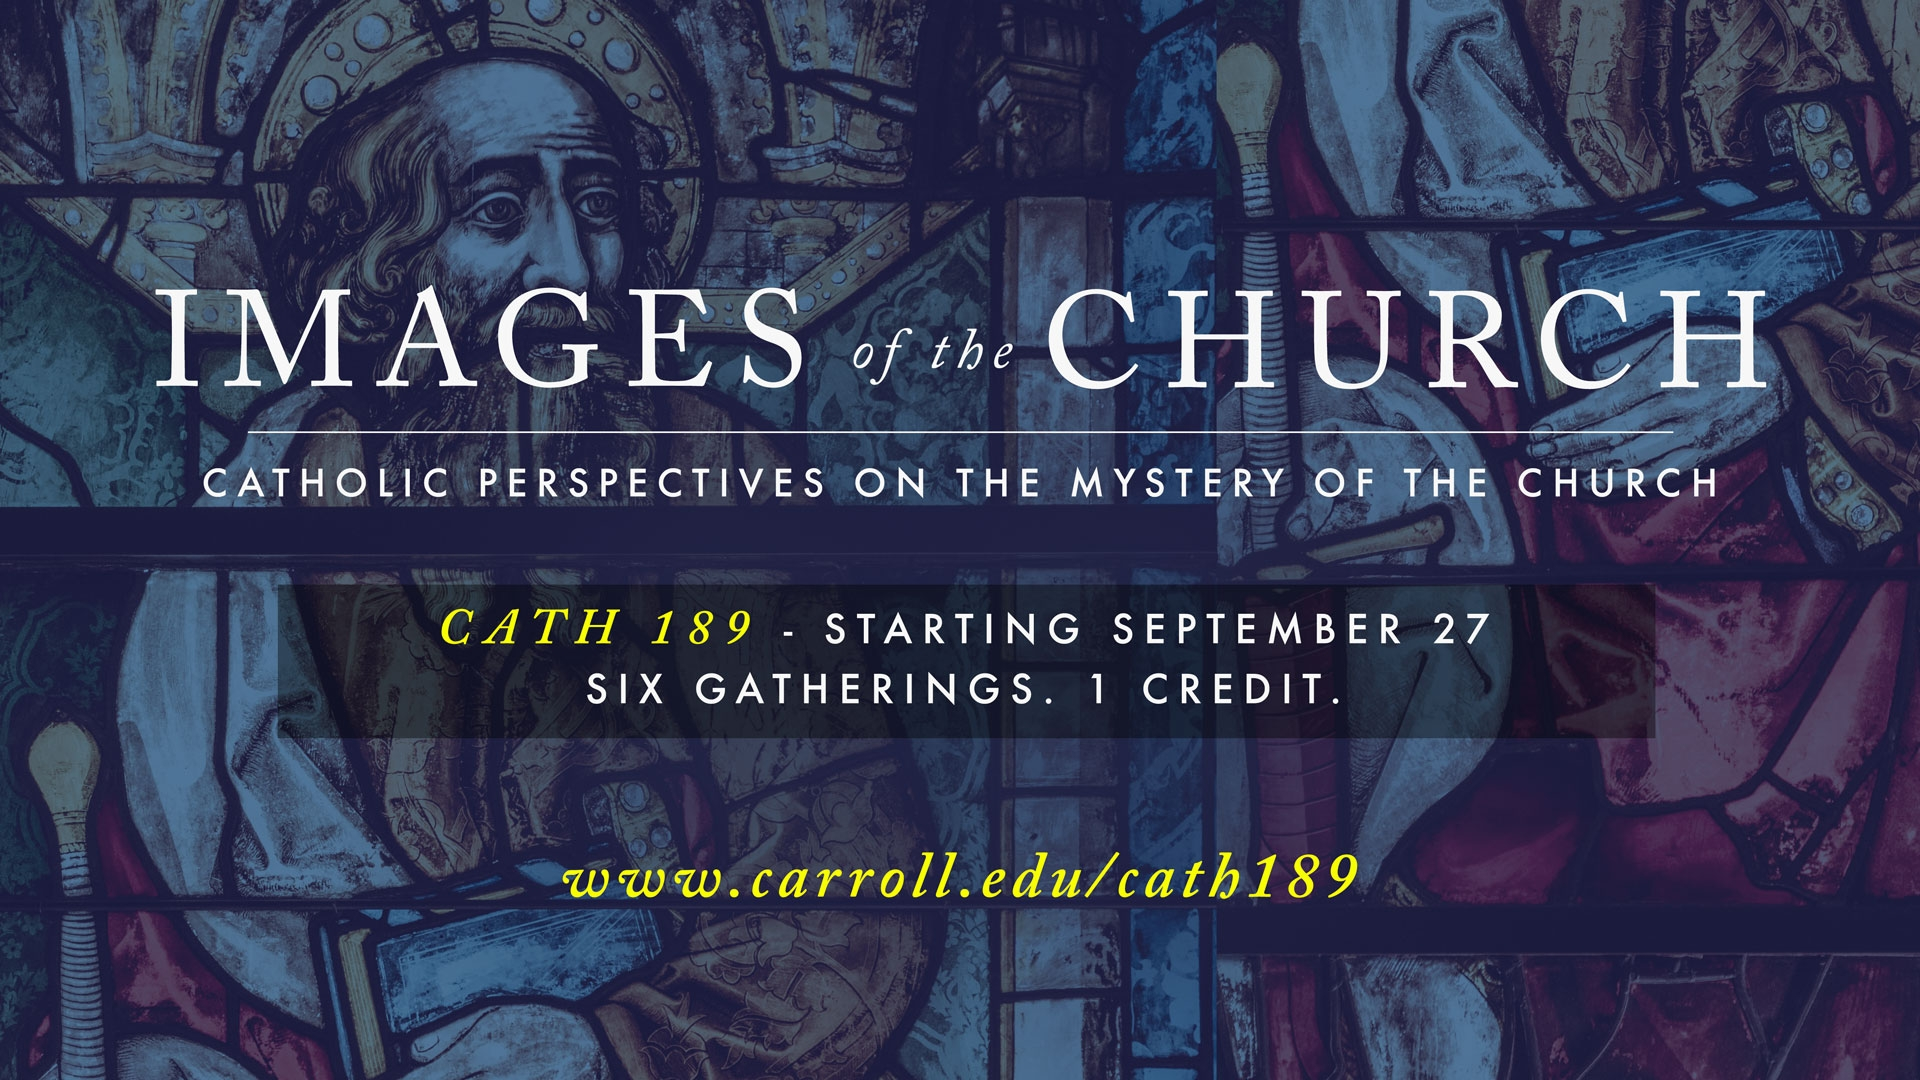 CATH 189 Images of the Church Lecture Series graphic